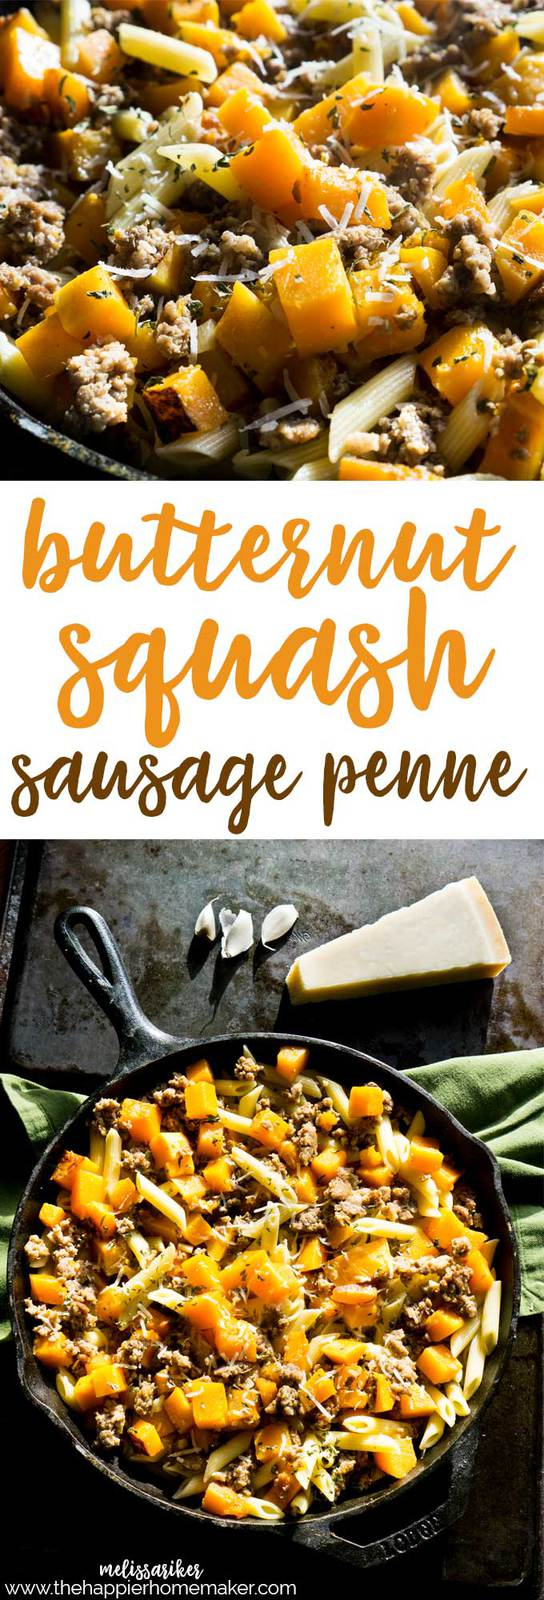 Butternut Squash and Sausage Penne is an easy weeknight dinner recipe and tasty enough for entertaining!